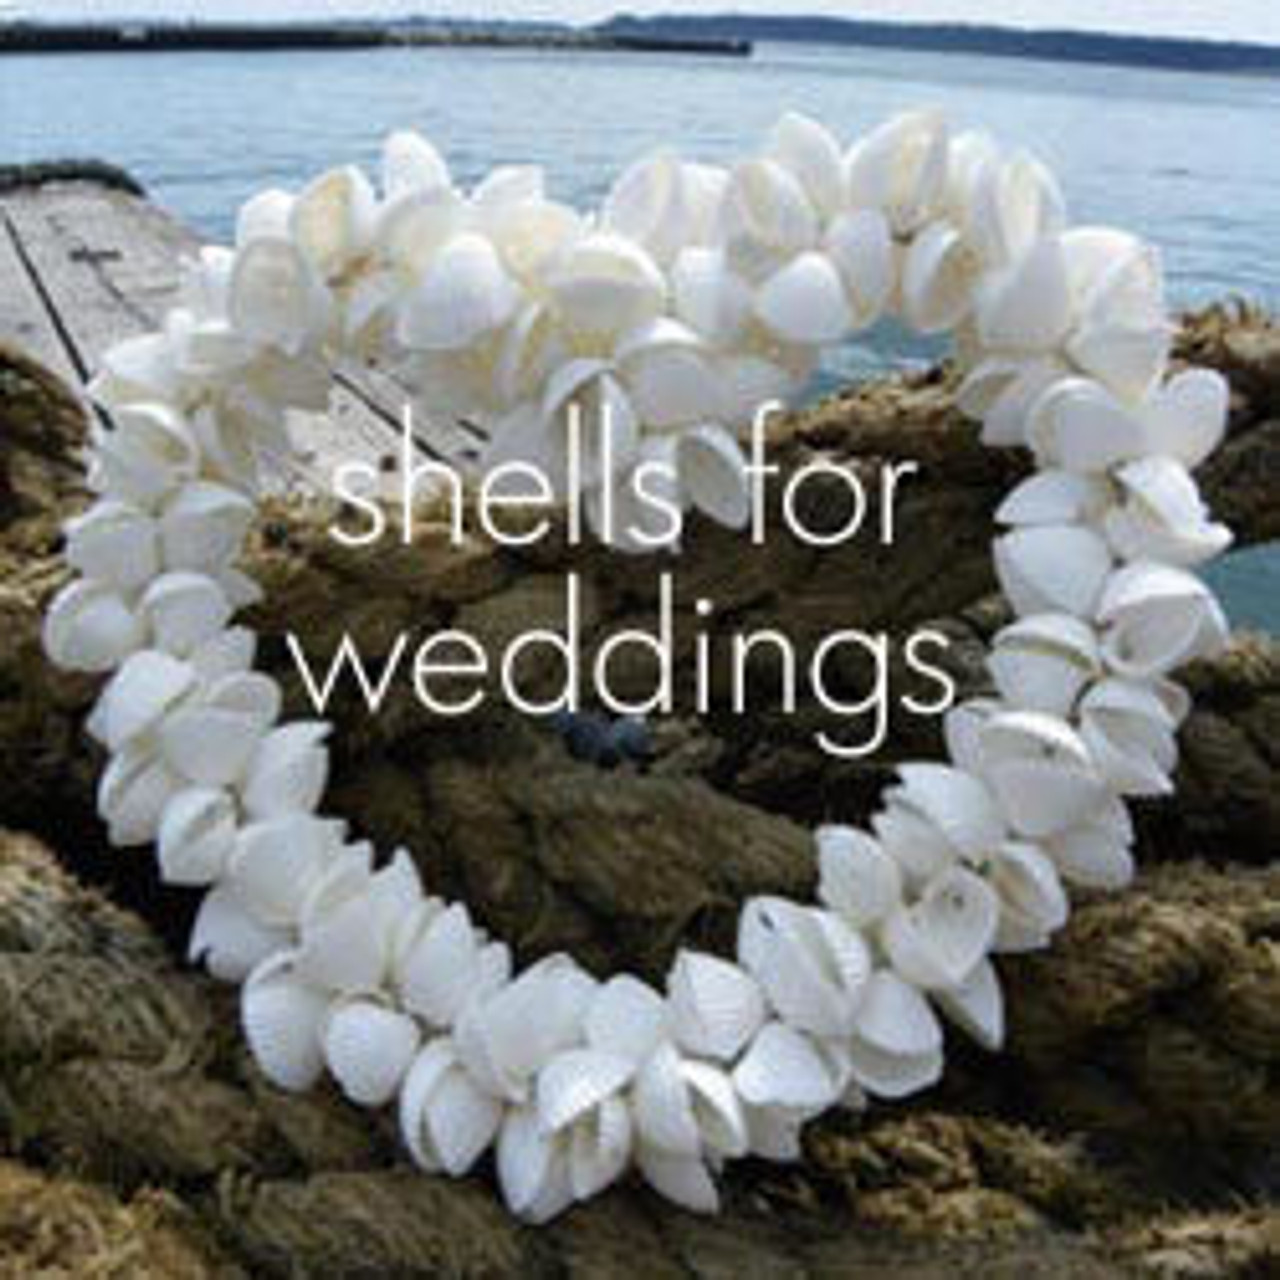 Wedding Shells